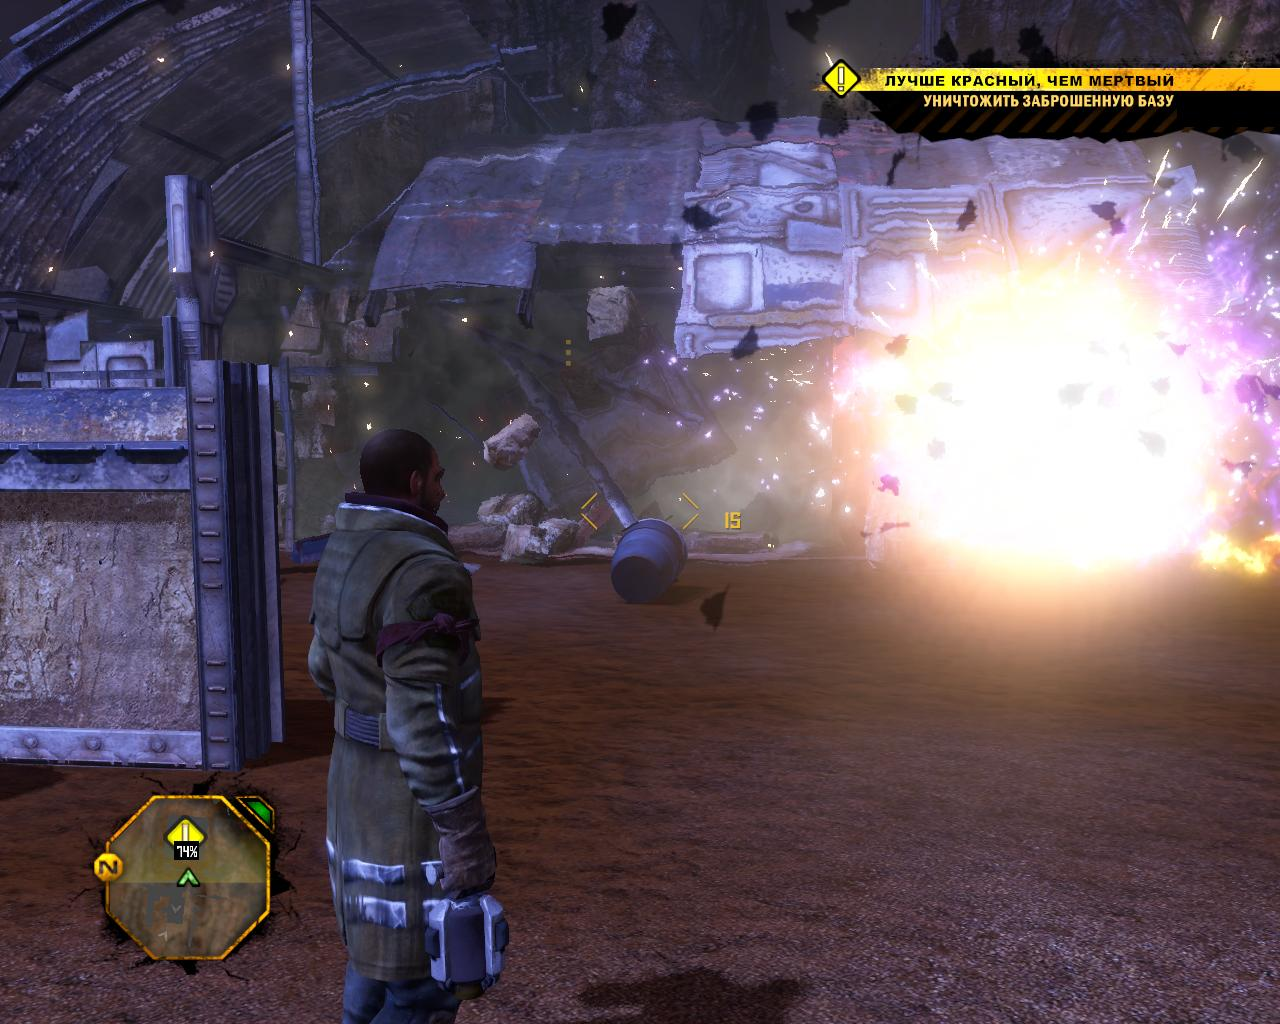 guerrilla mode matchmaking Get the latest red faction: guerrilla cheats, codes win 250 matchmaking games battle scarred enter spectator mode and enjoy the show guerrilla.